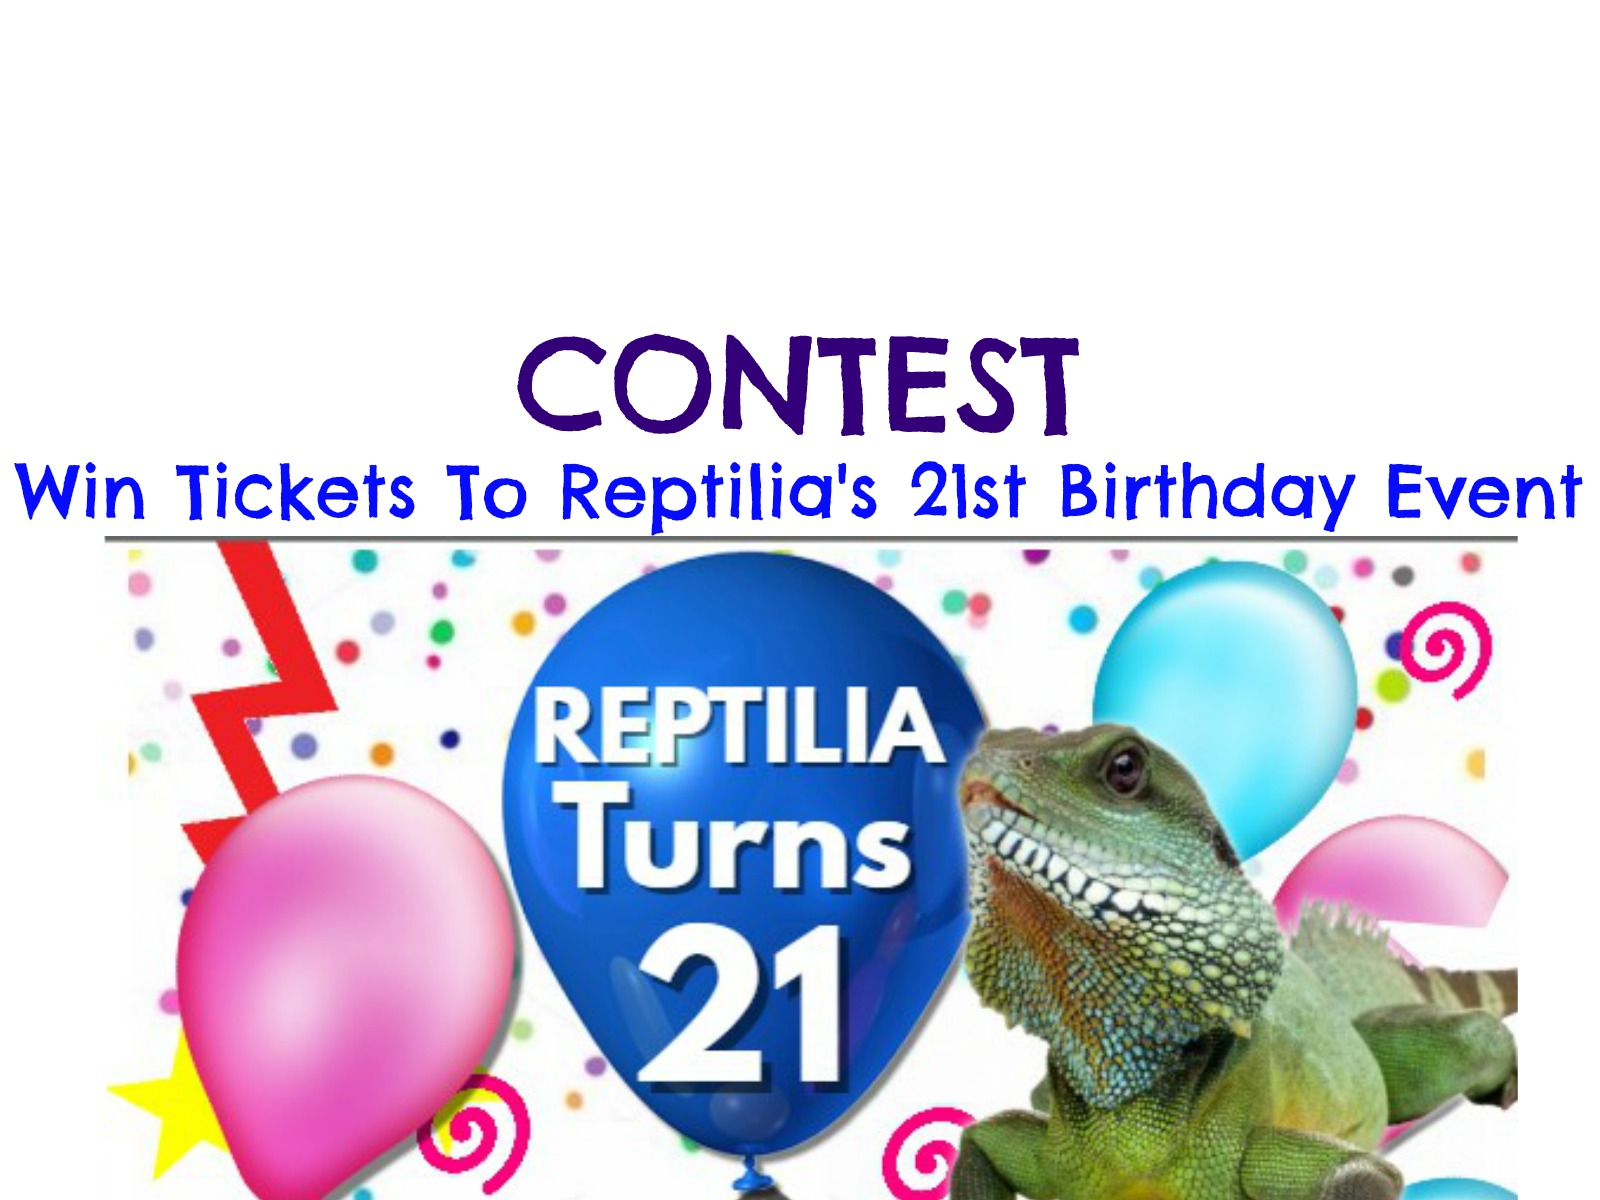 Contest: Win 5 FREE Tickets to the Reptilia Event